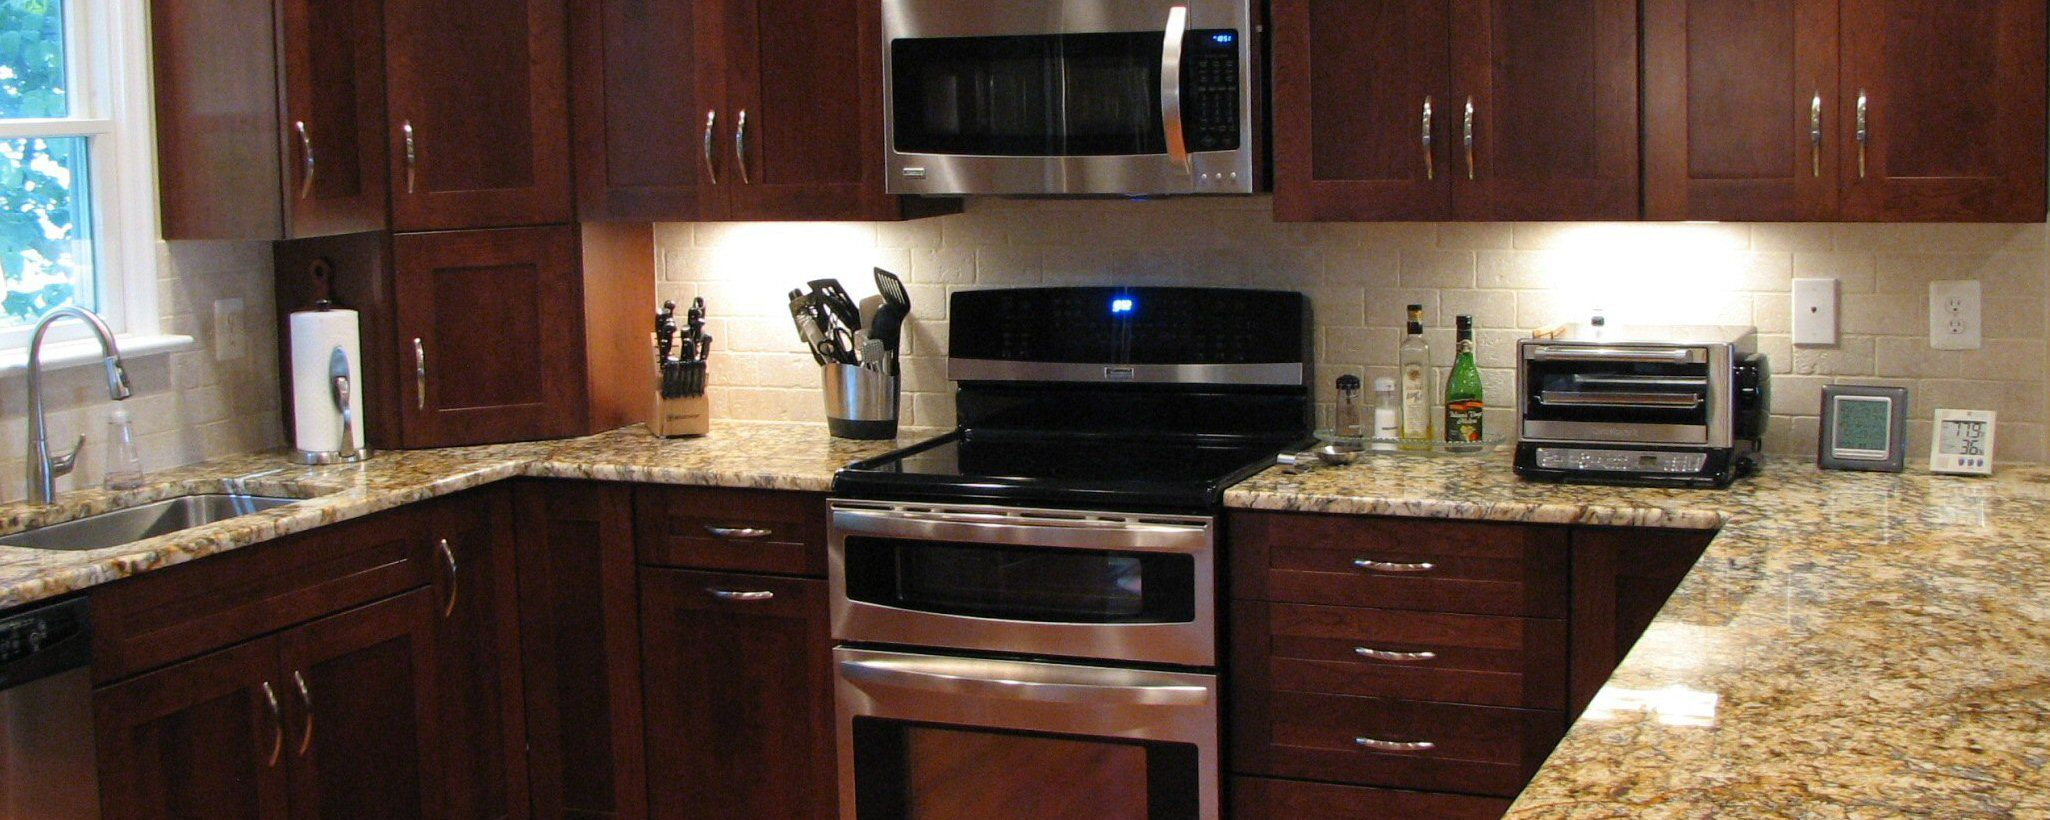 How Much Does Granite Countertops Cost At Lowes : ... Counter Tops On Pinterest Kitchen Backsplash Granite Countertop Prices